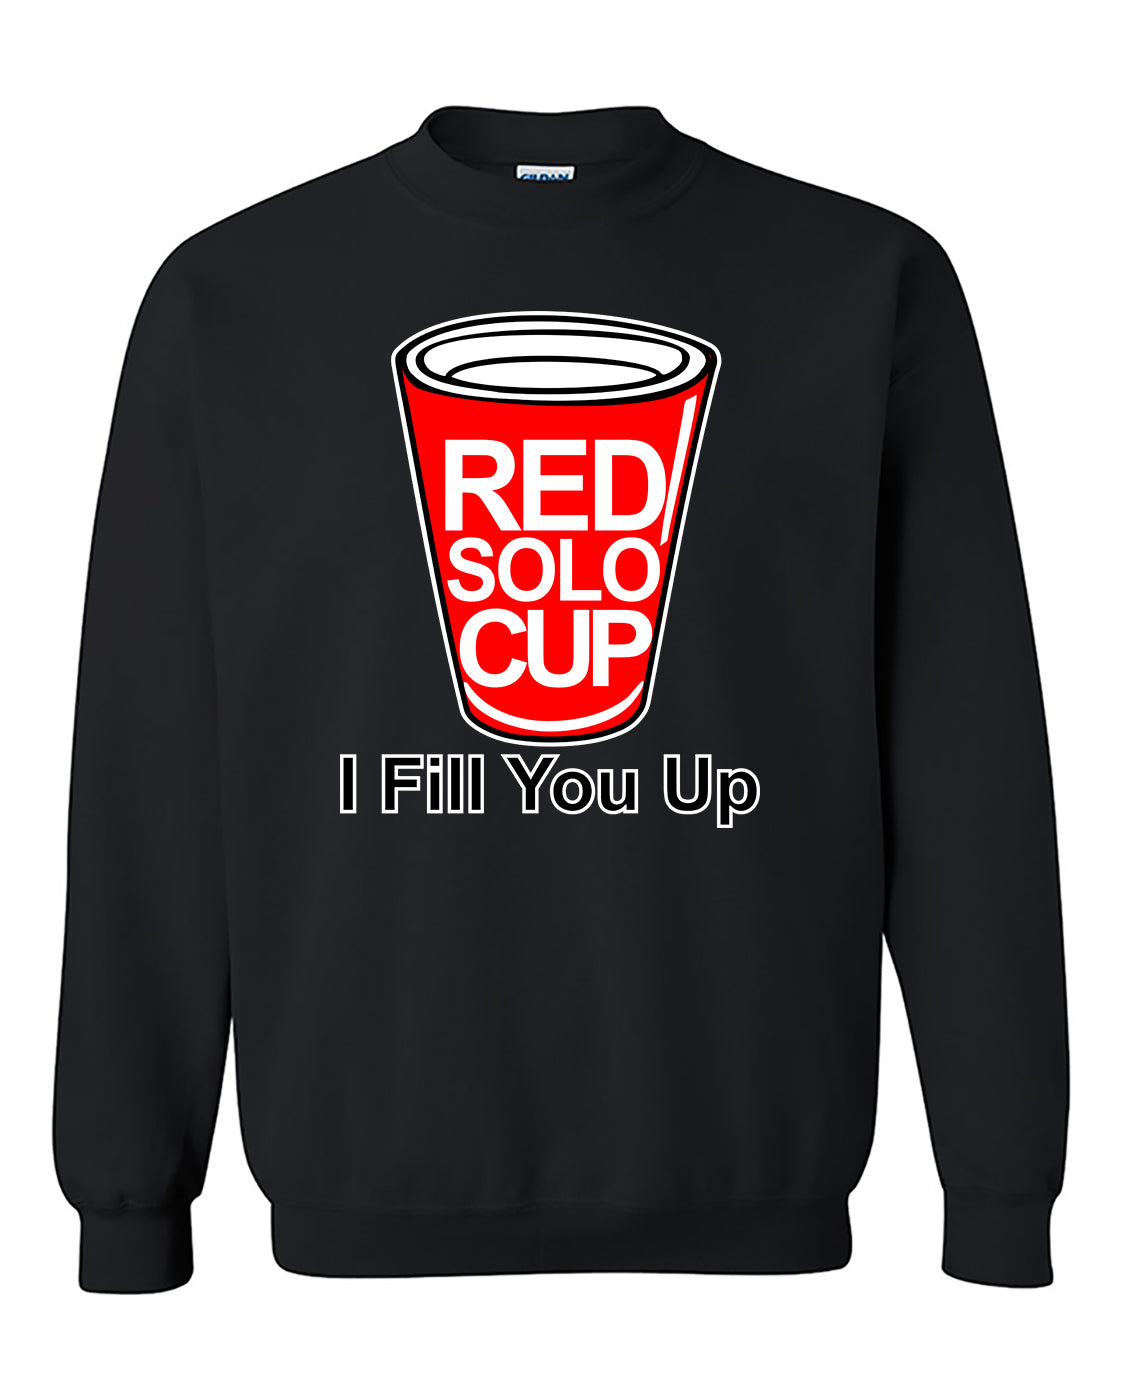 Red Solo Cup I Fill You Up Funny Fashion Crewneck Sweater